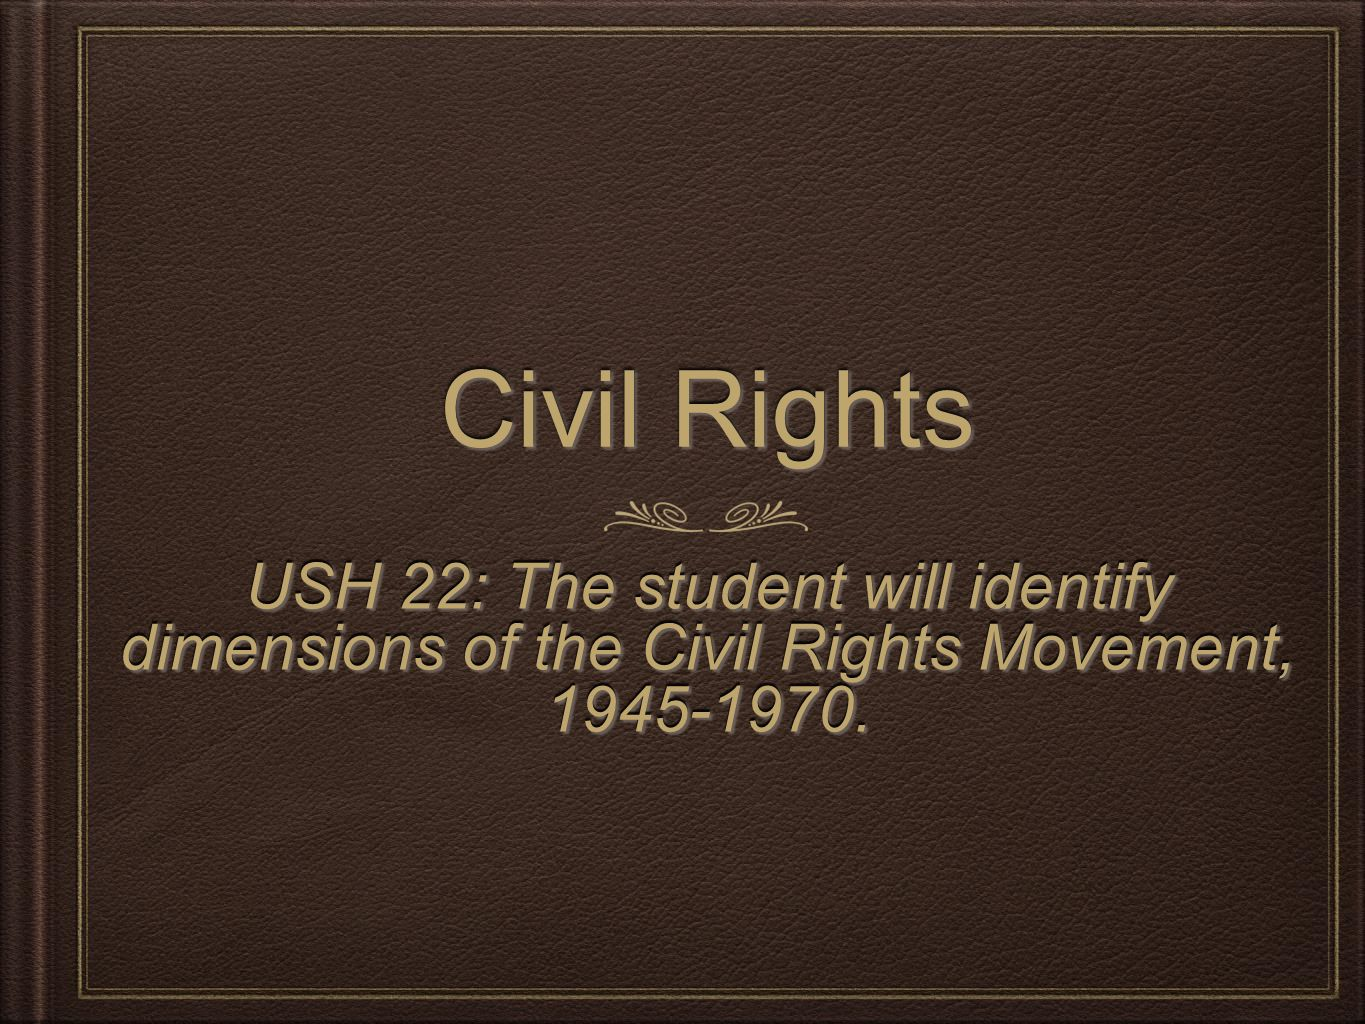 the civil rights movement america 1945 Find helpful customer reviews and review ratings for debating the civil rights movement, 1945-1968 (debating twentieth-century america) at amazoncom read honest and unbiased product reviews from our users.